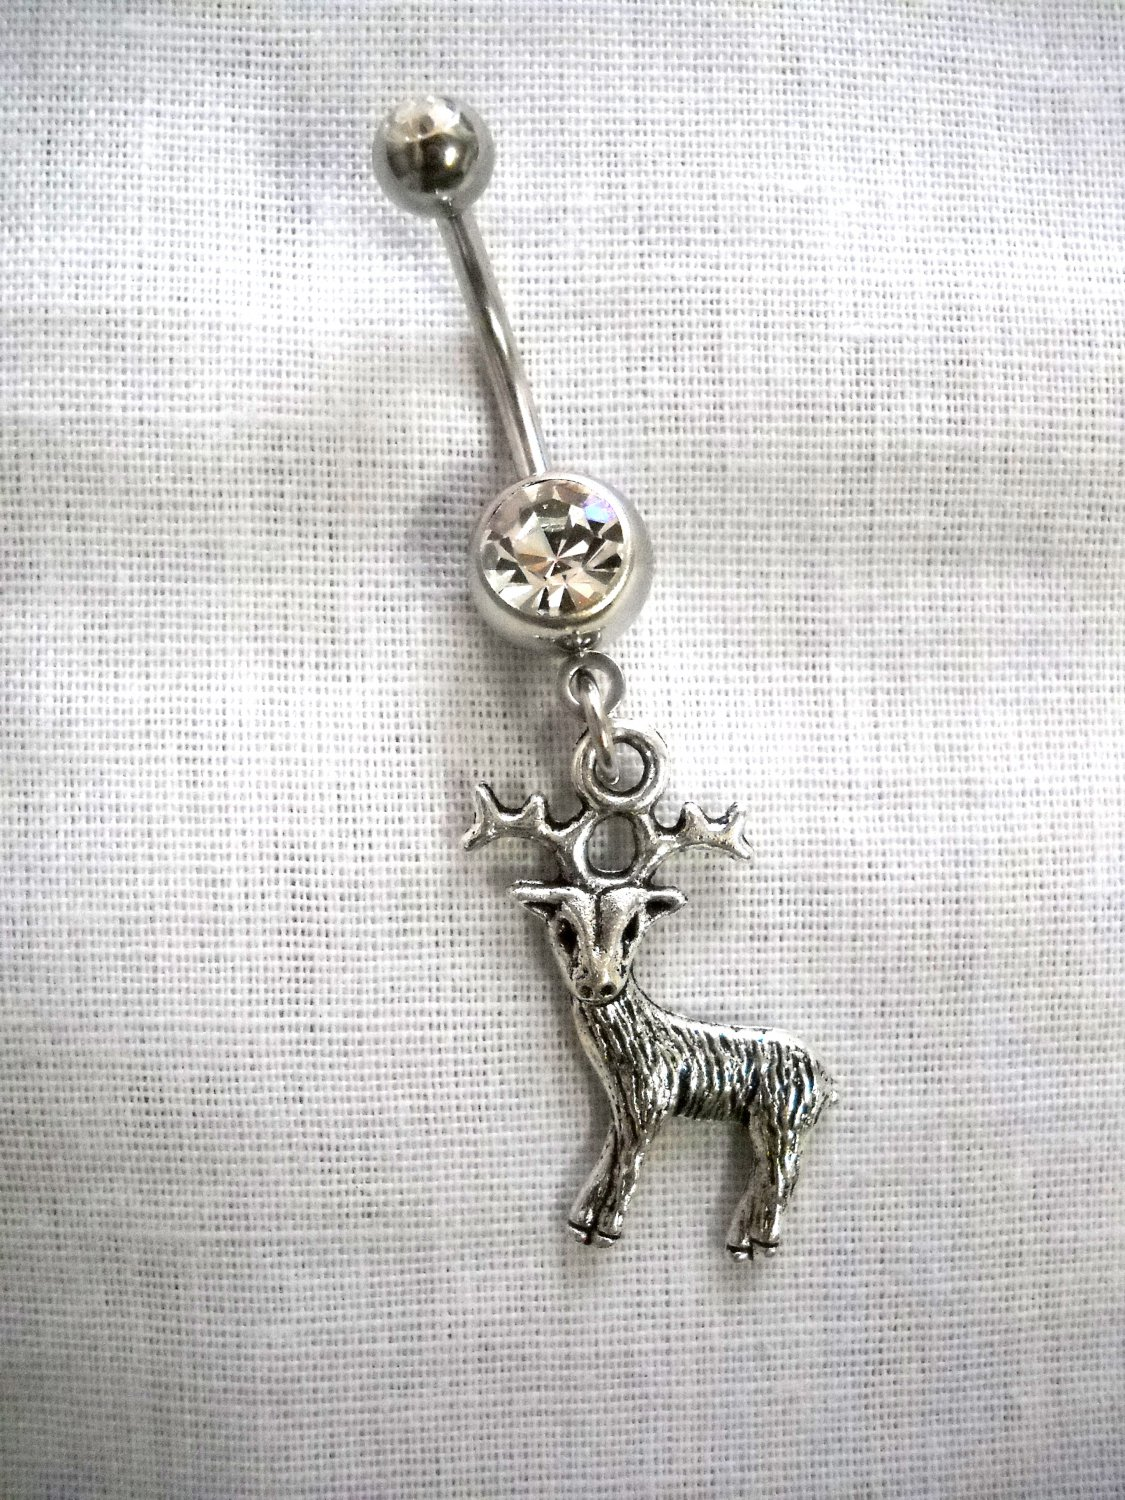 WILD COUNTRY WHITETAIL 8 POINT BUCK / DEER IN HEADLIGHTS ON 14g CLEAR CZ BELLY RING BARBELL